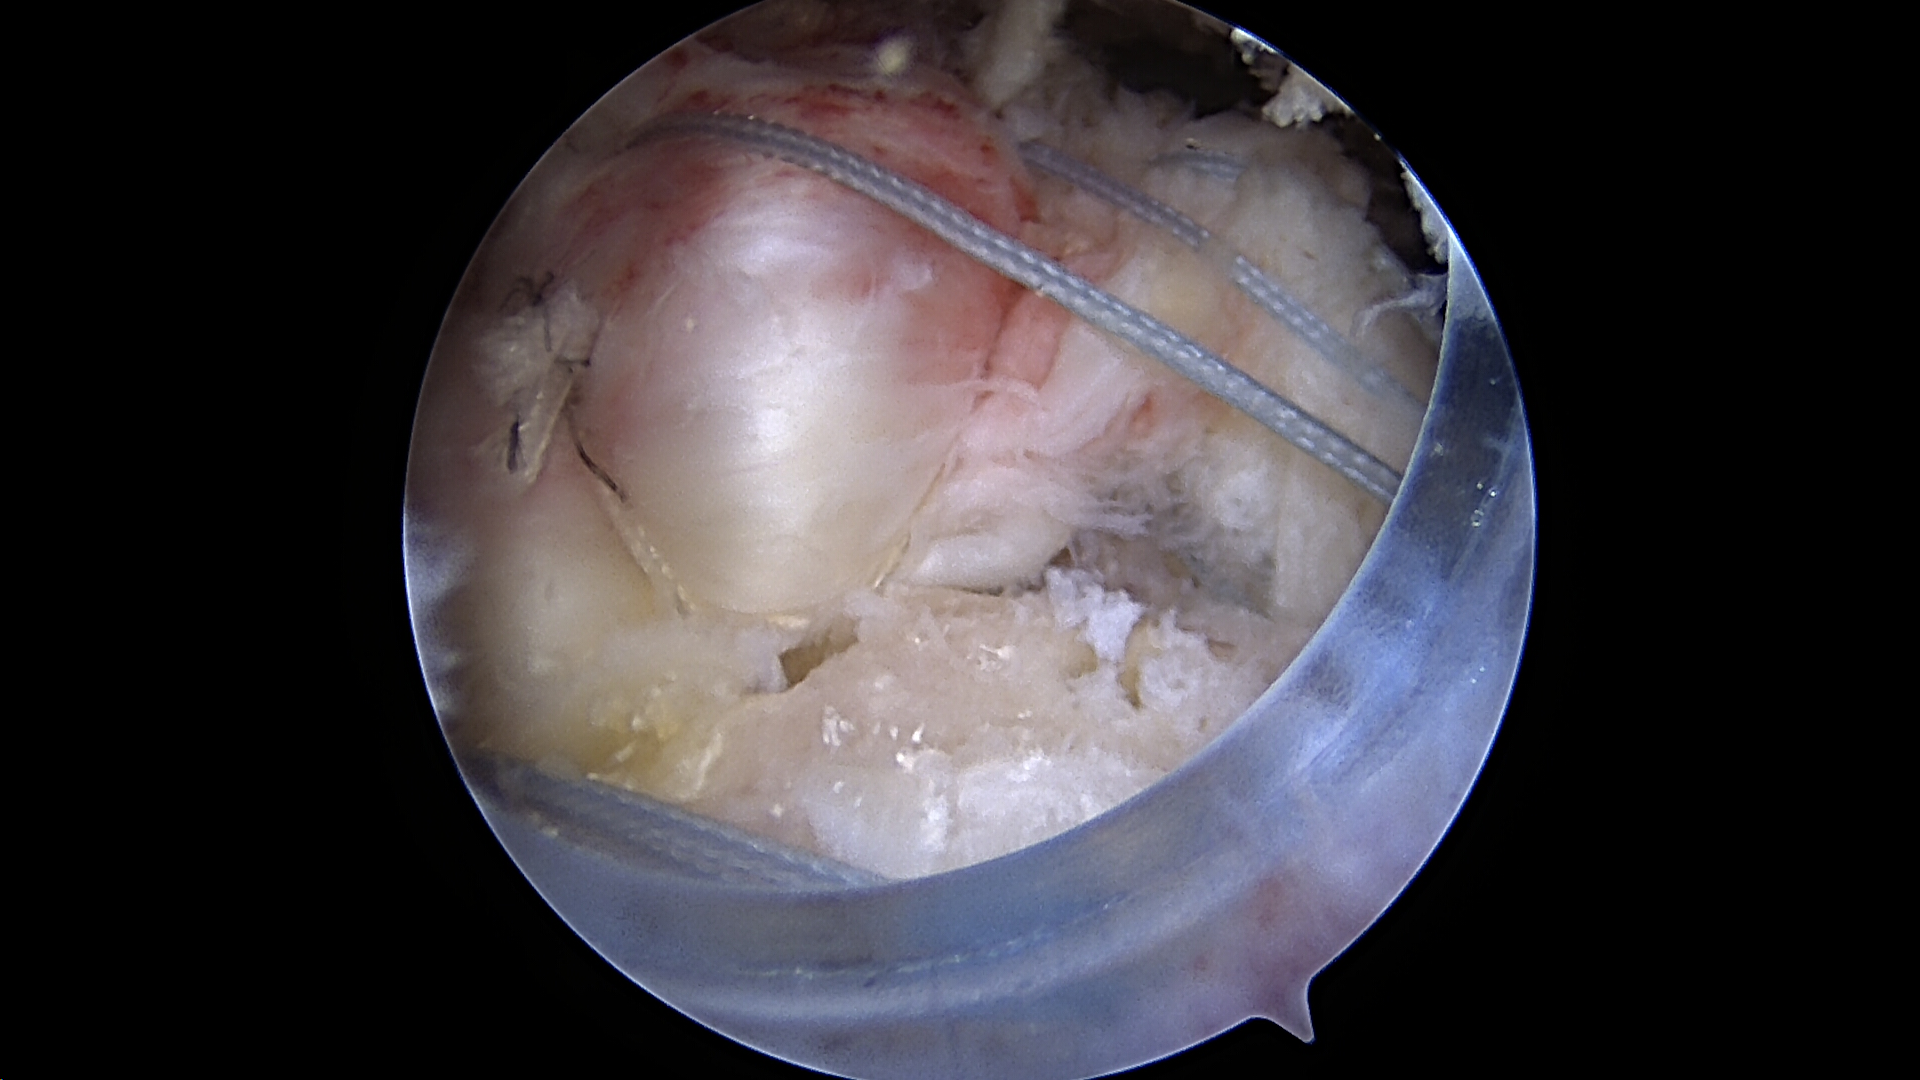 Single row medialized repair of previous massive retracted rotator cuff tear viewed from the lateral portal